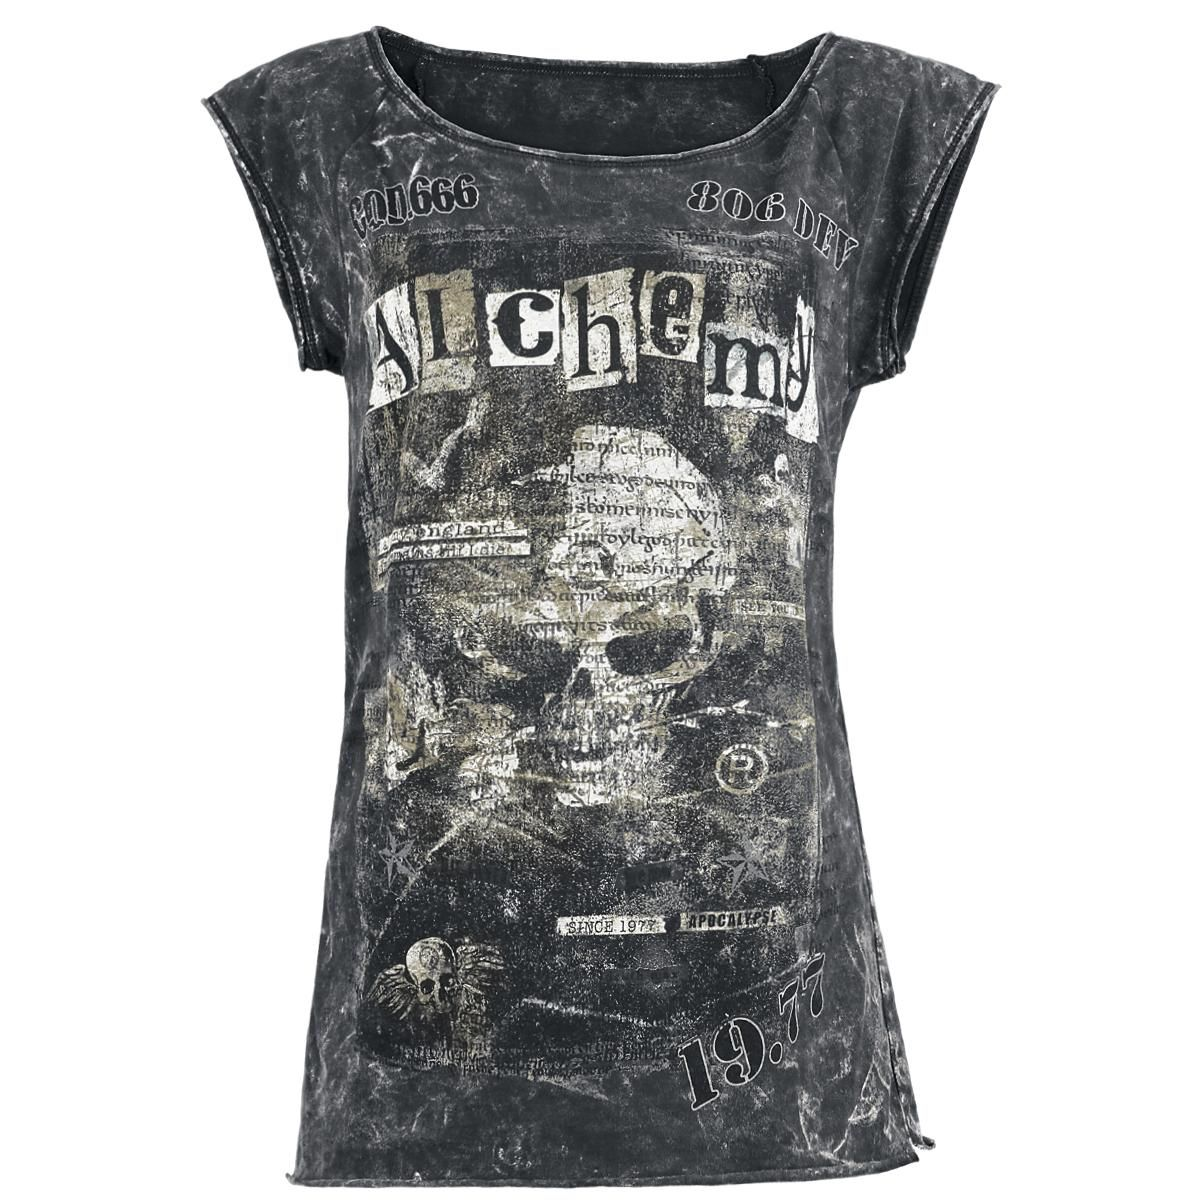 Code 666 The Girls Longshirt Of Alchemy England Makes You Look Shirt Navy Damned Smooth On